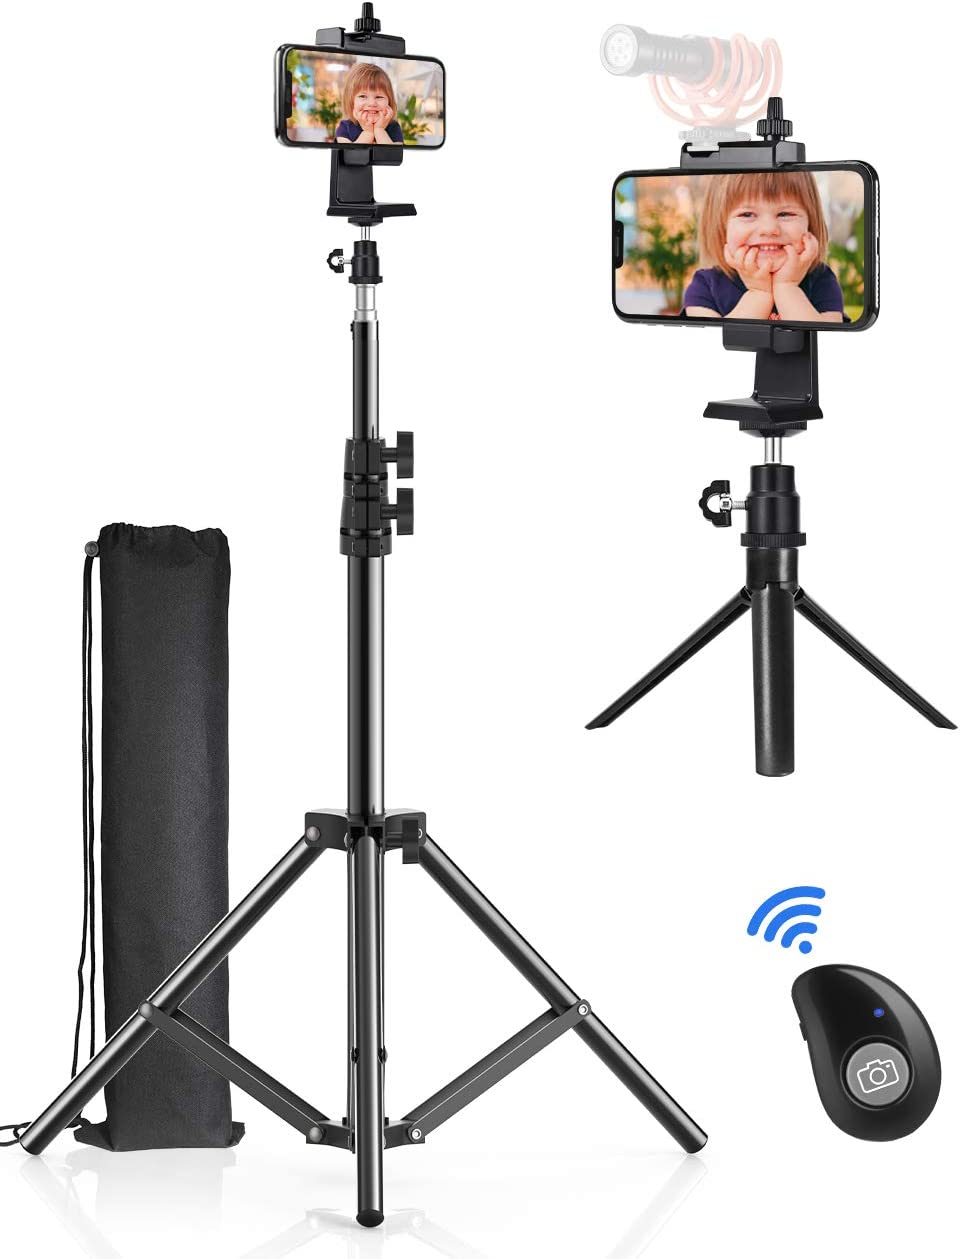 Phone Tripod, Pixel 51 inch Cell Phone Tripod Stand + Mini Desktop Tripod with Selfie Remote for Recording/Live Streaming/Vlogging, Flexible Phone Holder, 360 Rotation Ball Head,Sturdy Portable Tripod